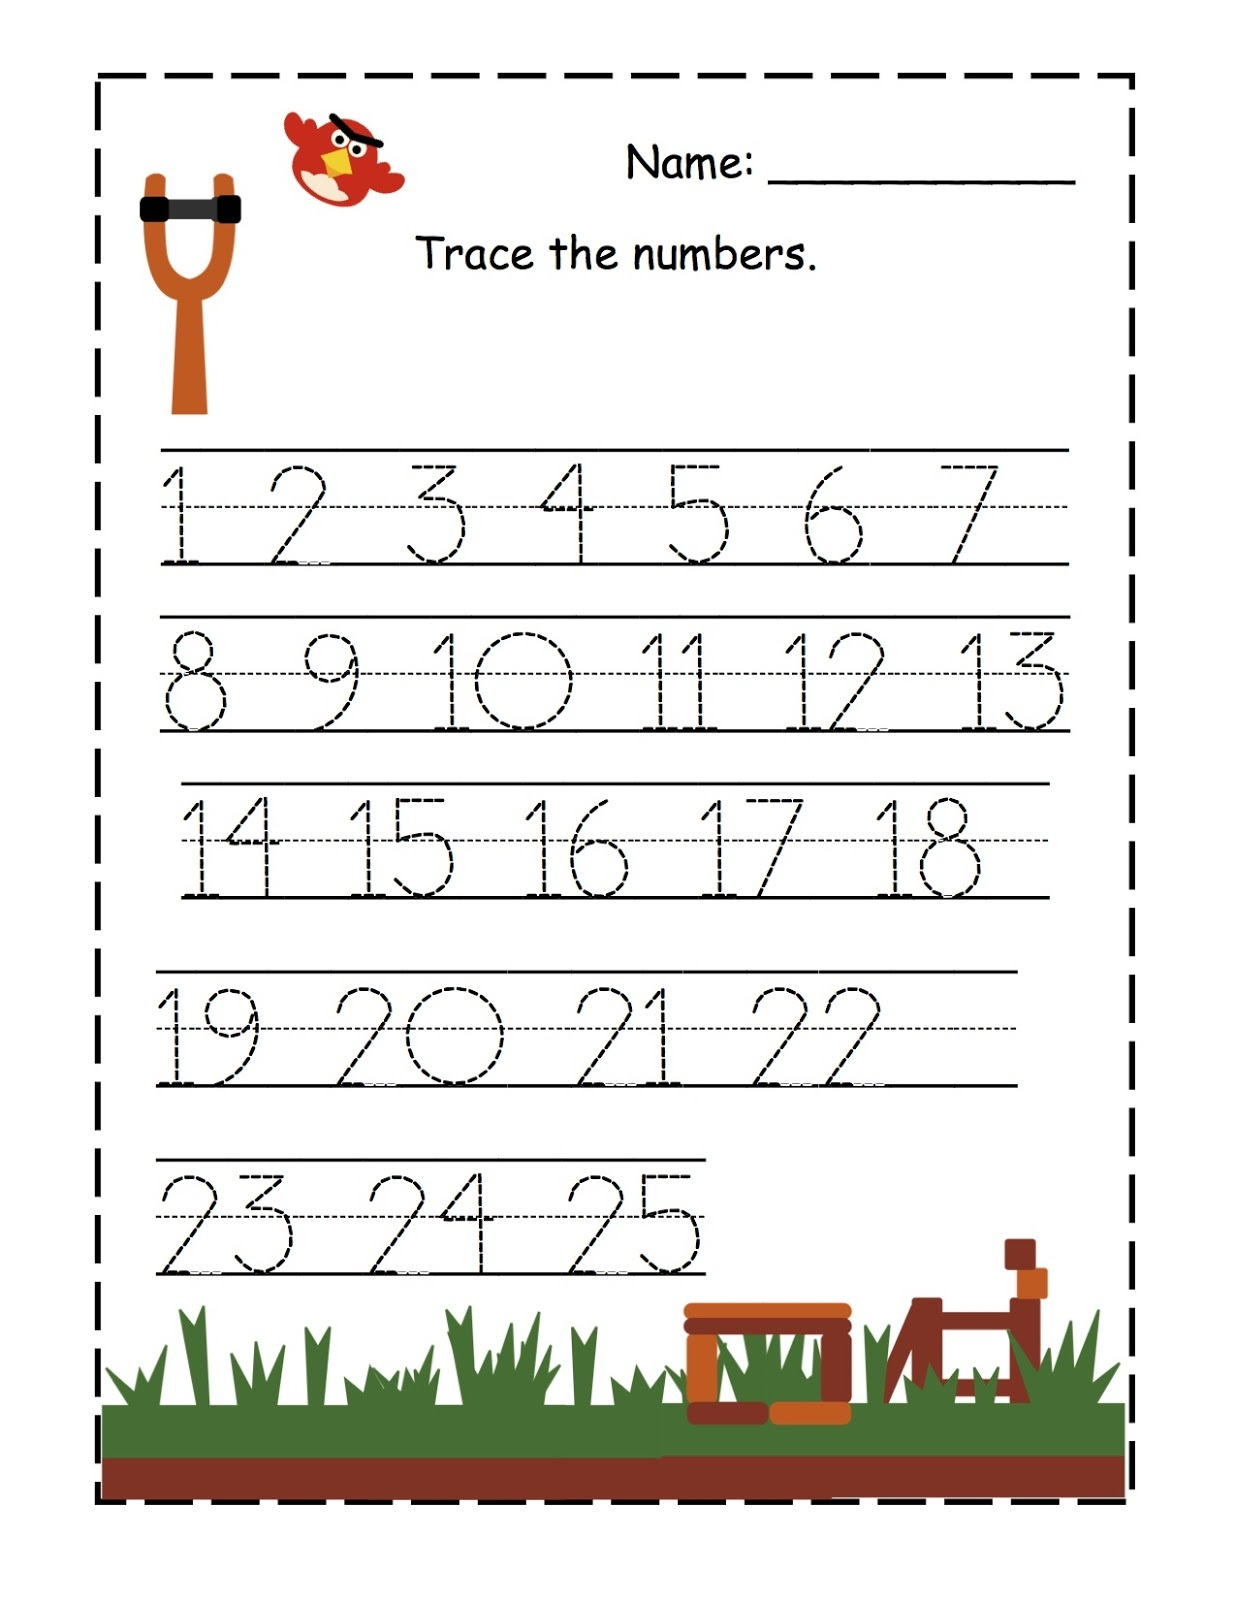 trace-the-numbers-1-25